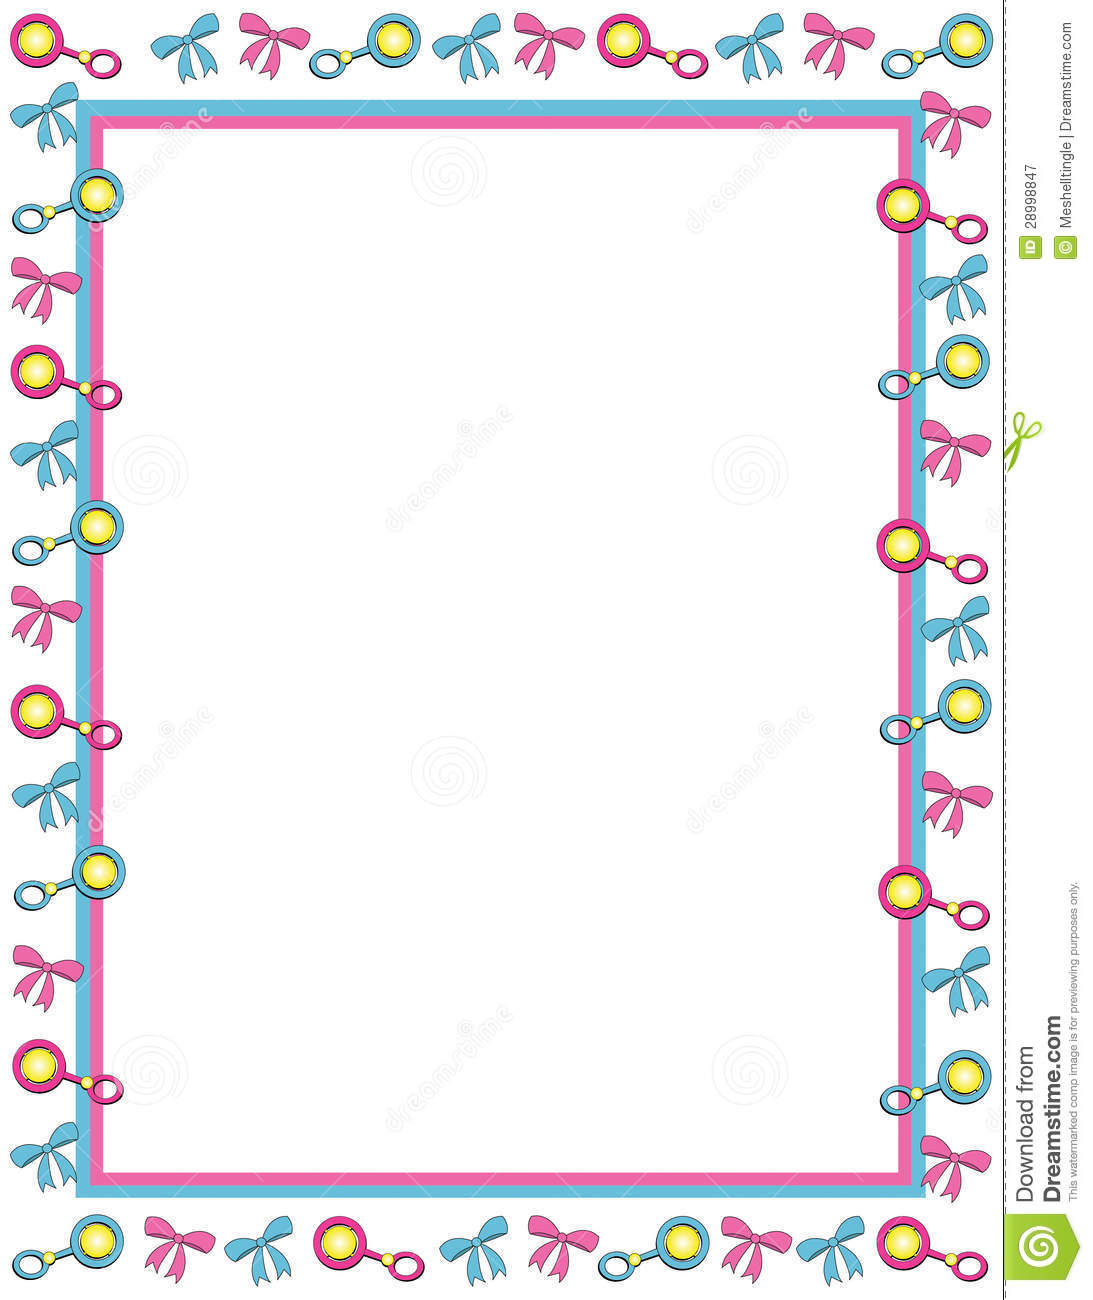 free baby borders clip art frames and borders for babies cartoon frame